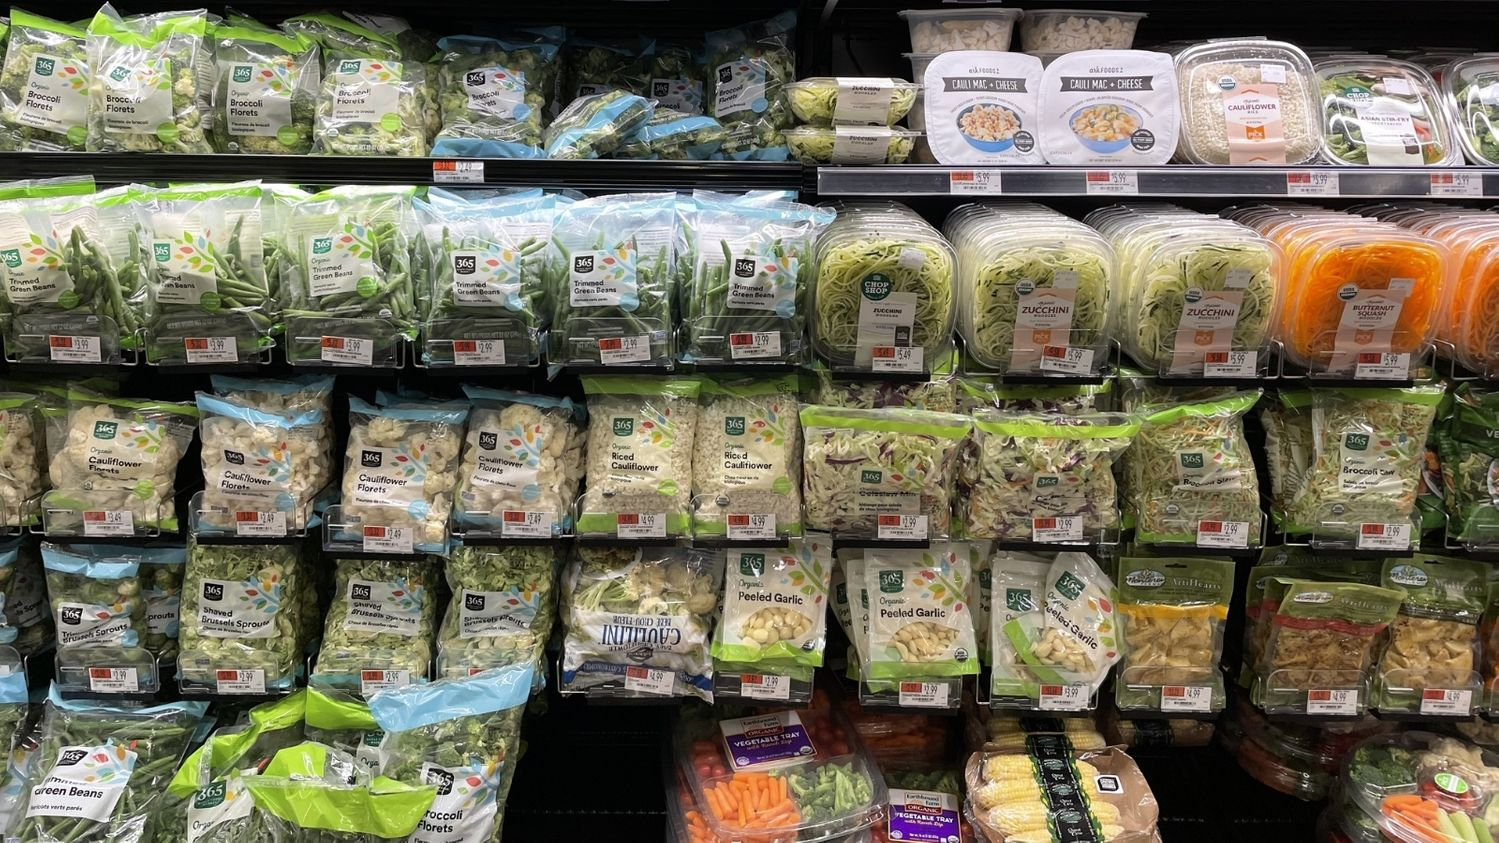 Whole Foods Produce Aisle